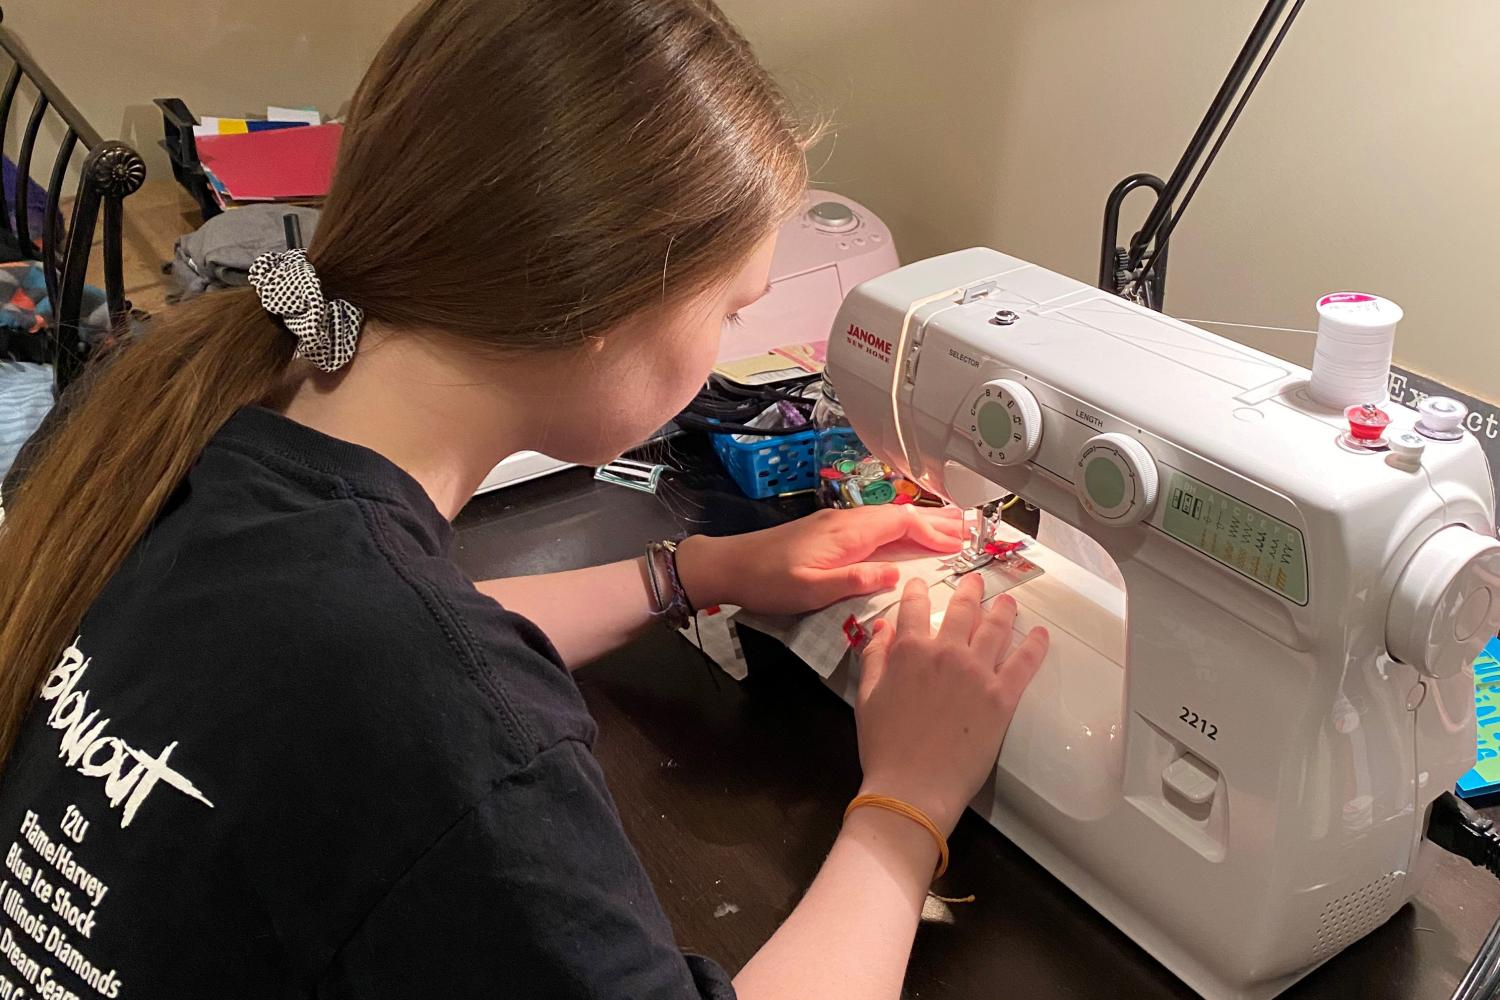 Young woman uses sewing machine to make mask